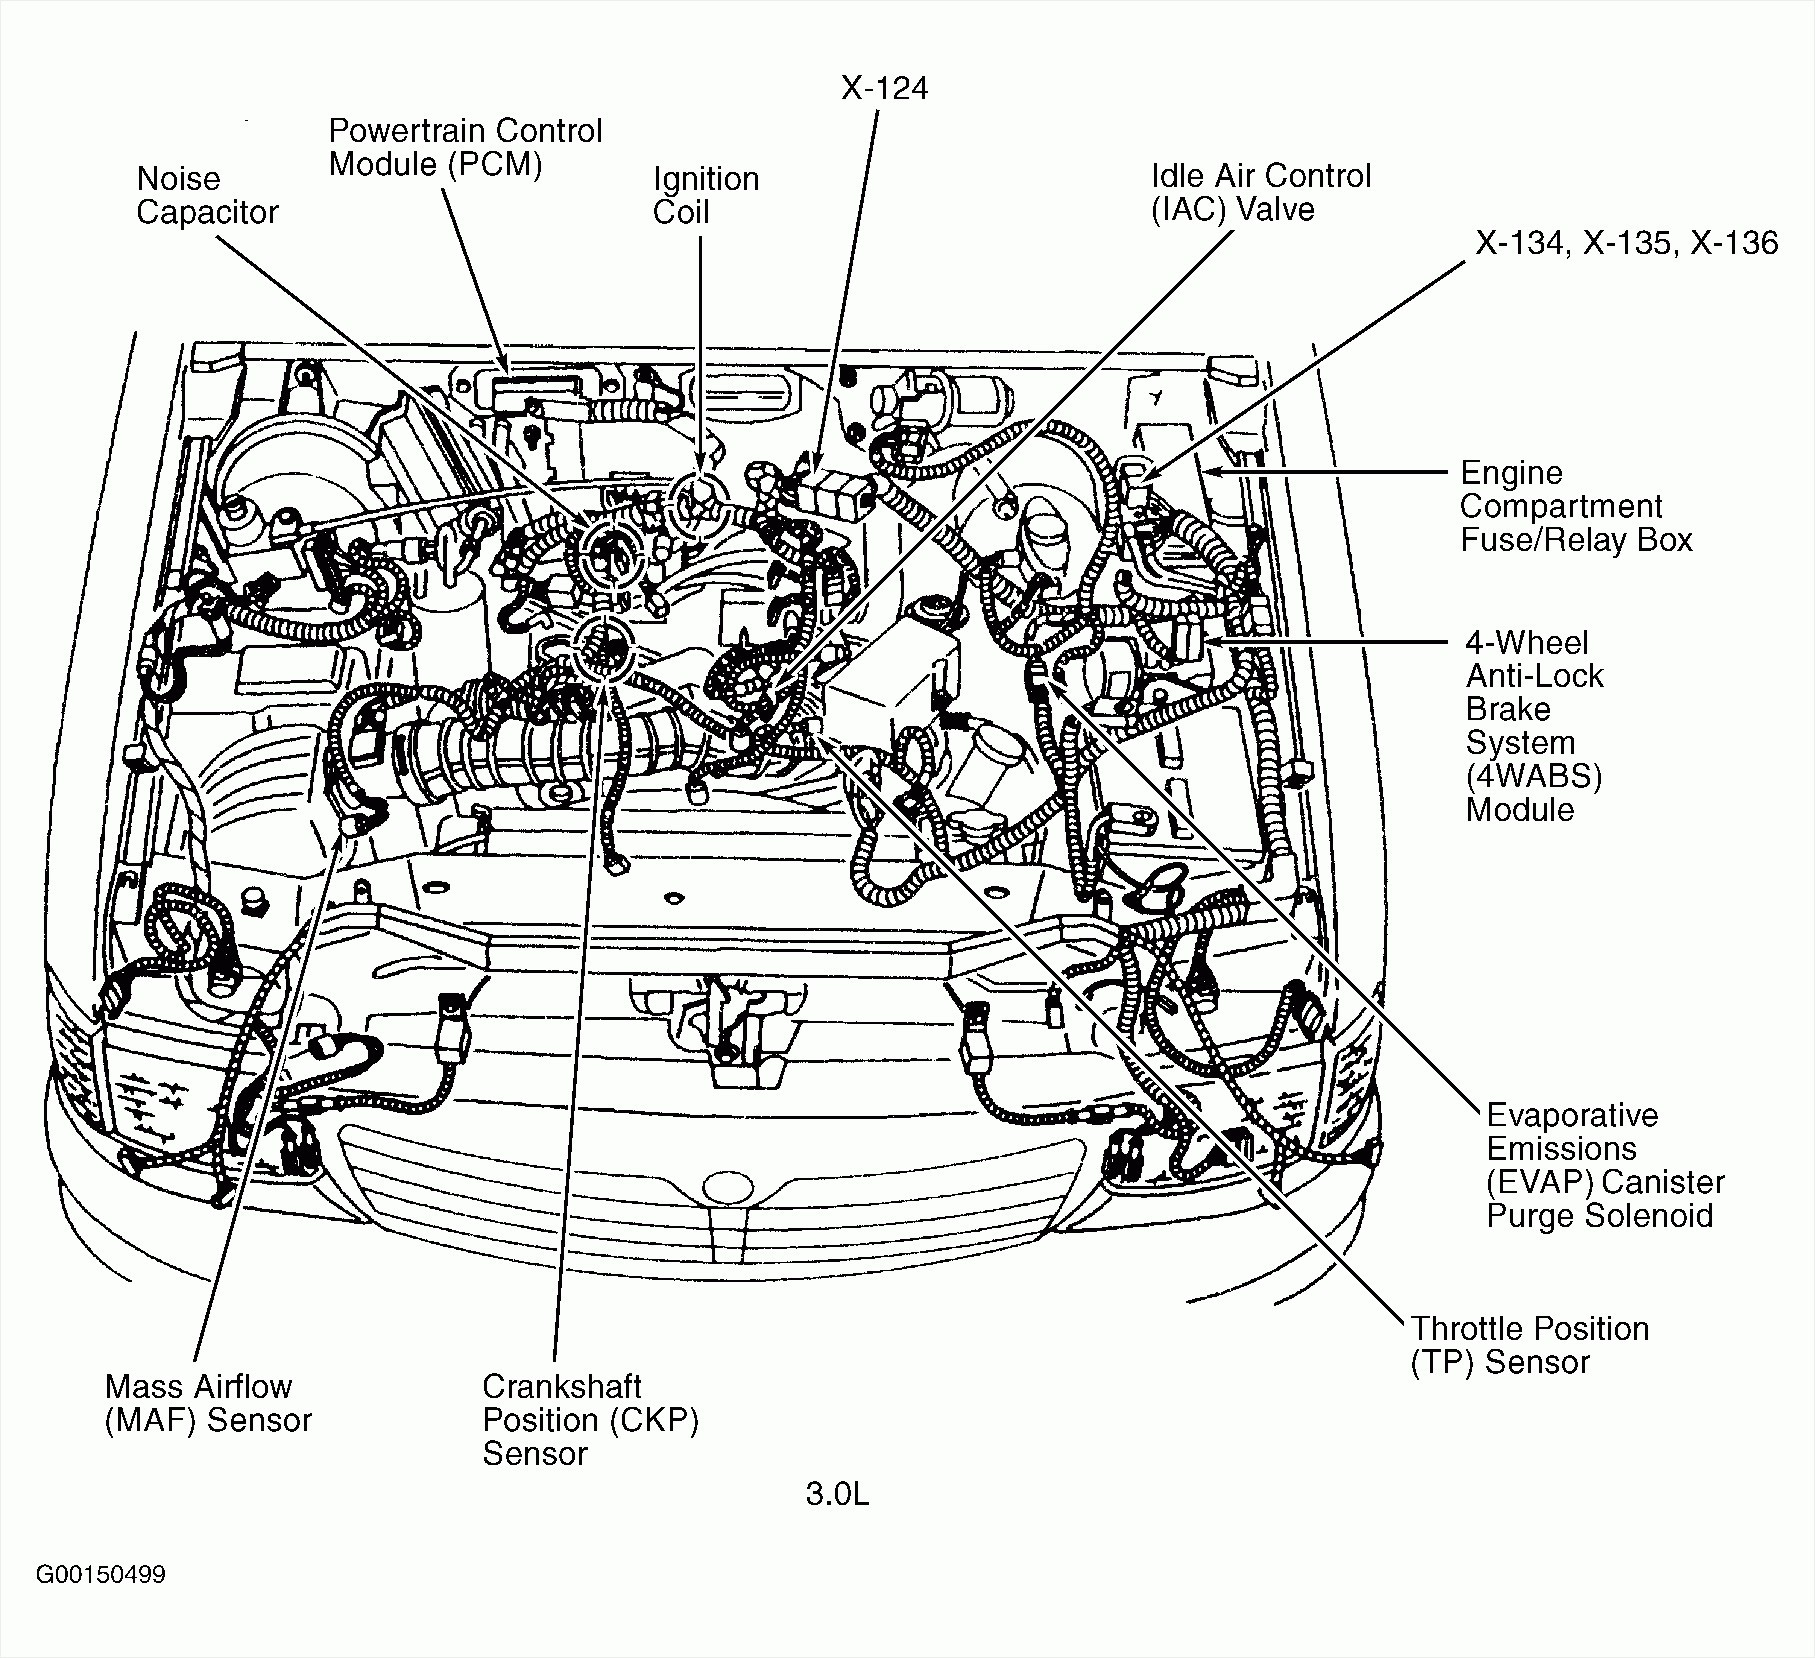 Toyota 4runner Engine Diagram 97 4runner Starter Wiring Diagram Schema Wiring Diagram Of Toyota 4runner Engine Diagram toyota 4runner Technical Information